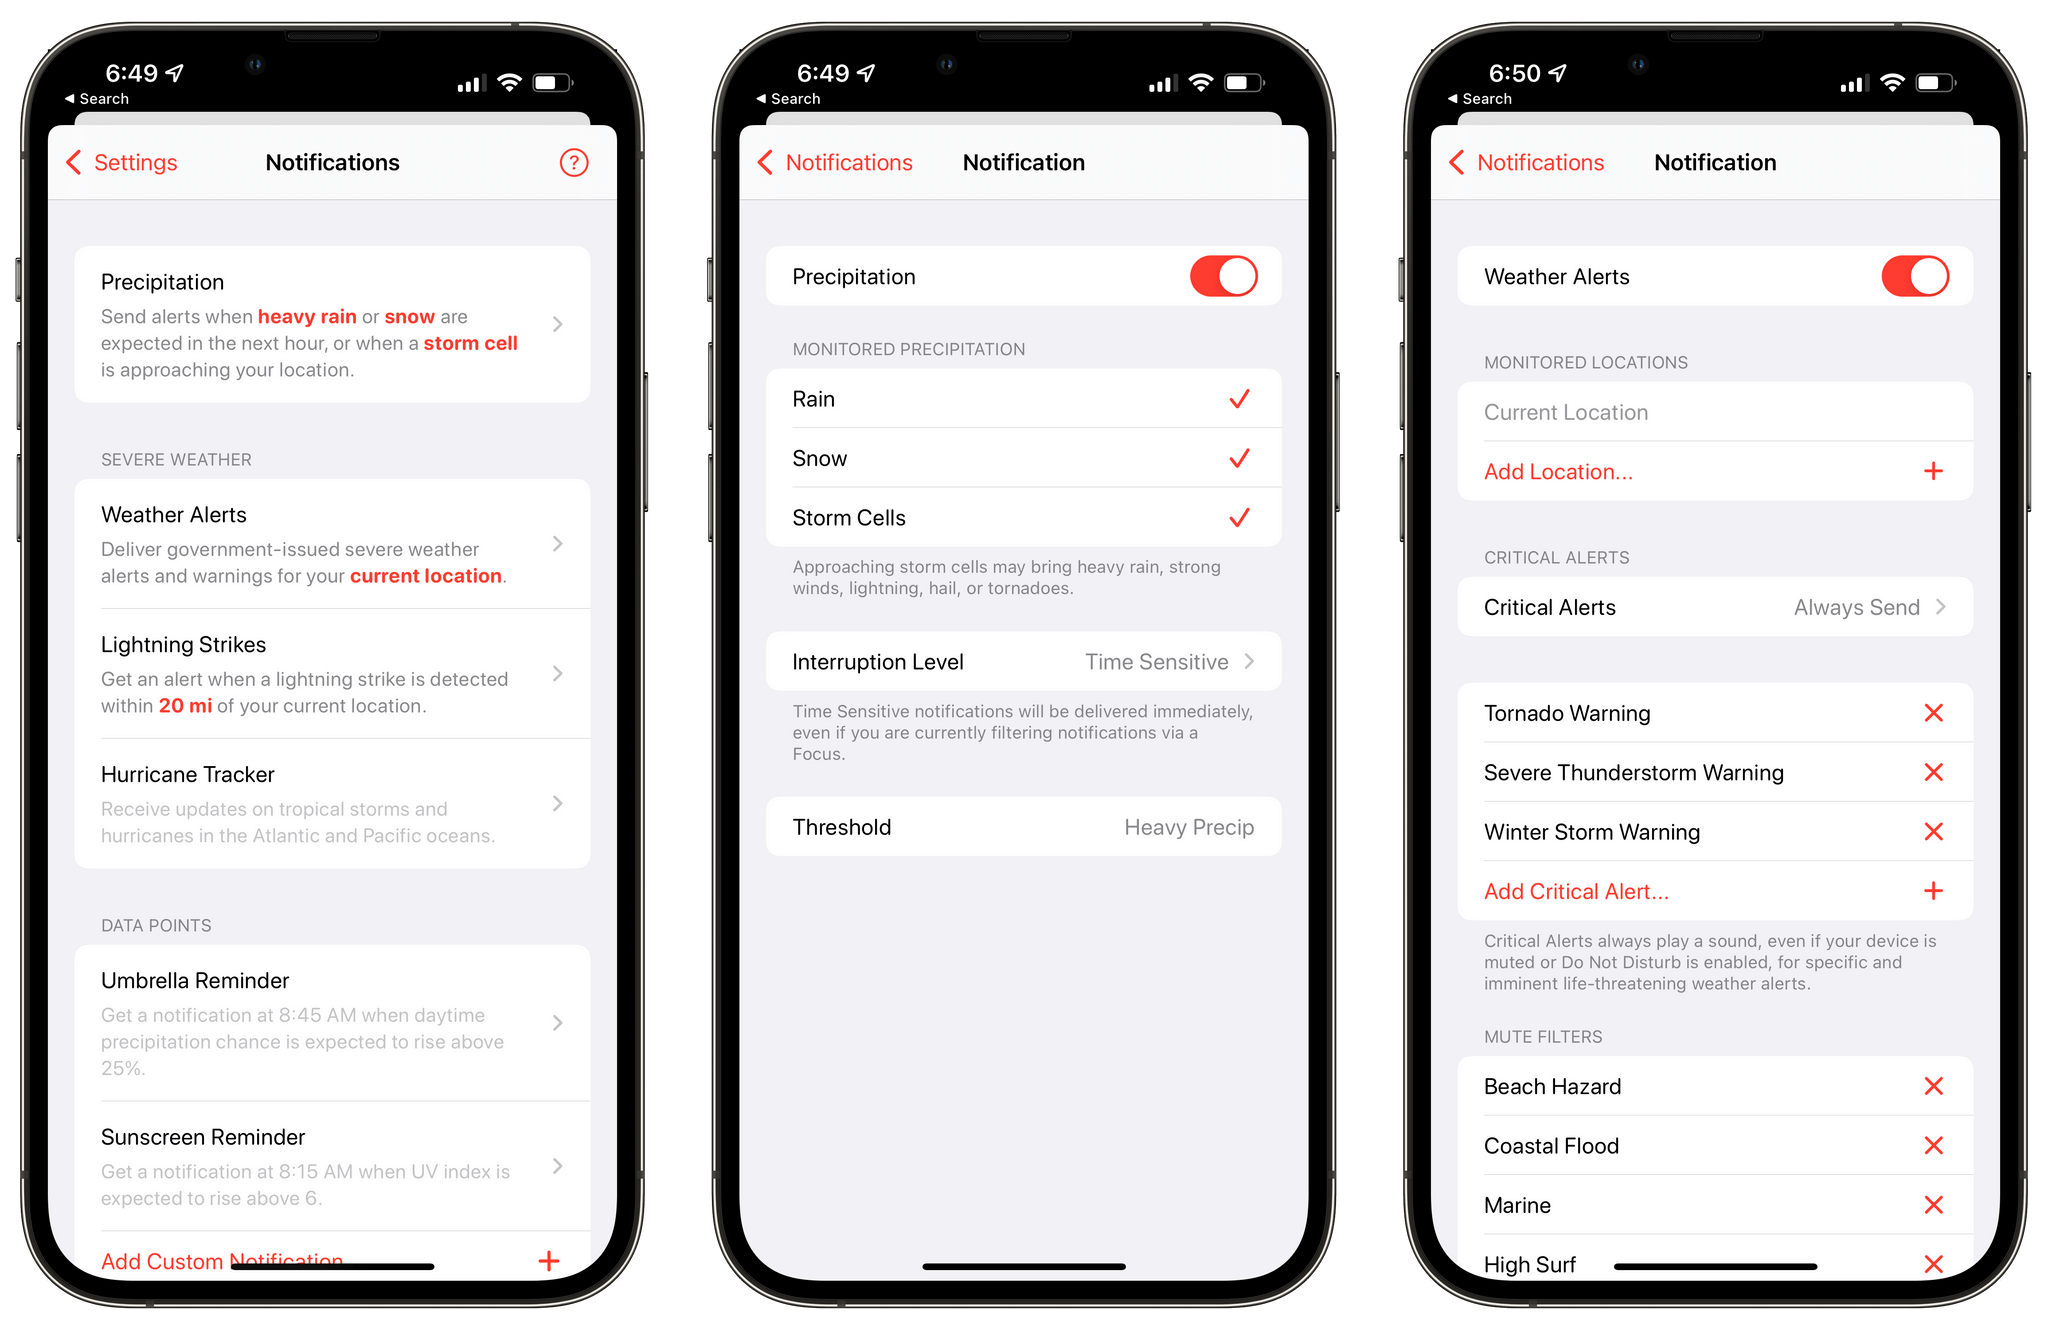 Setting up time sensitive notifications.